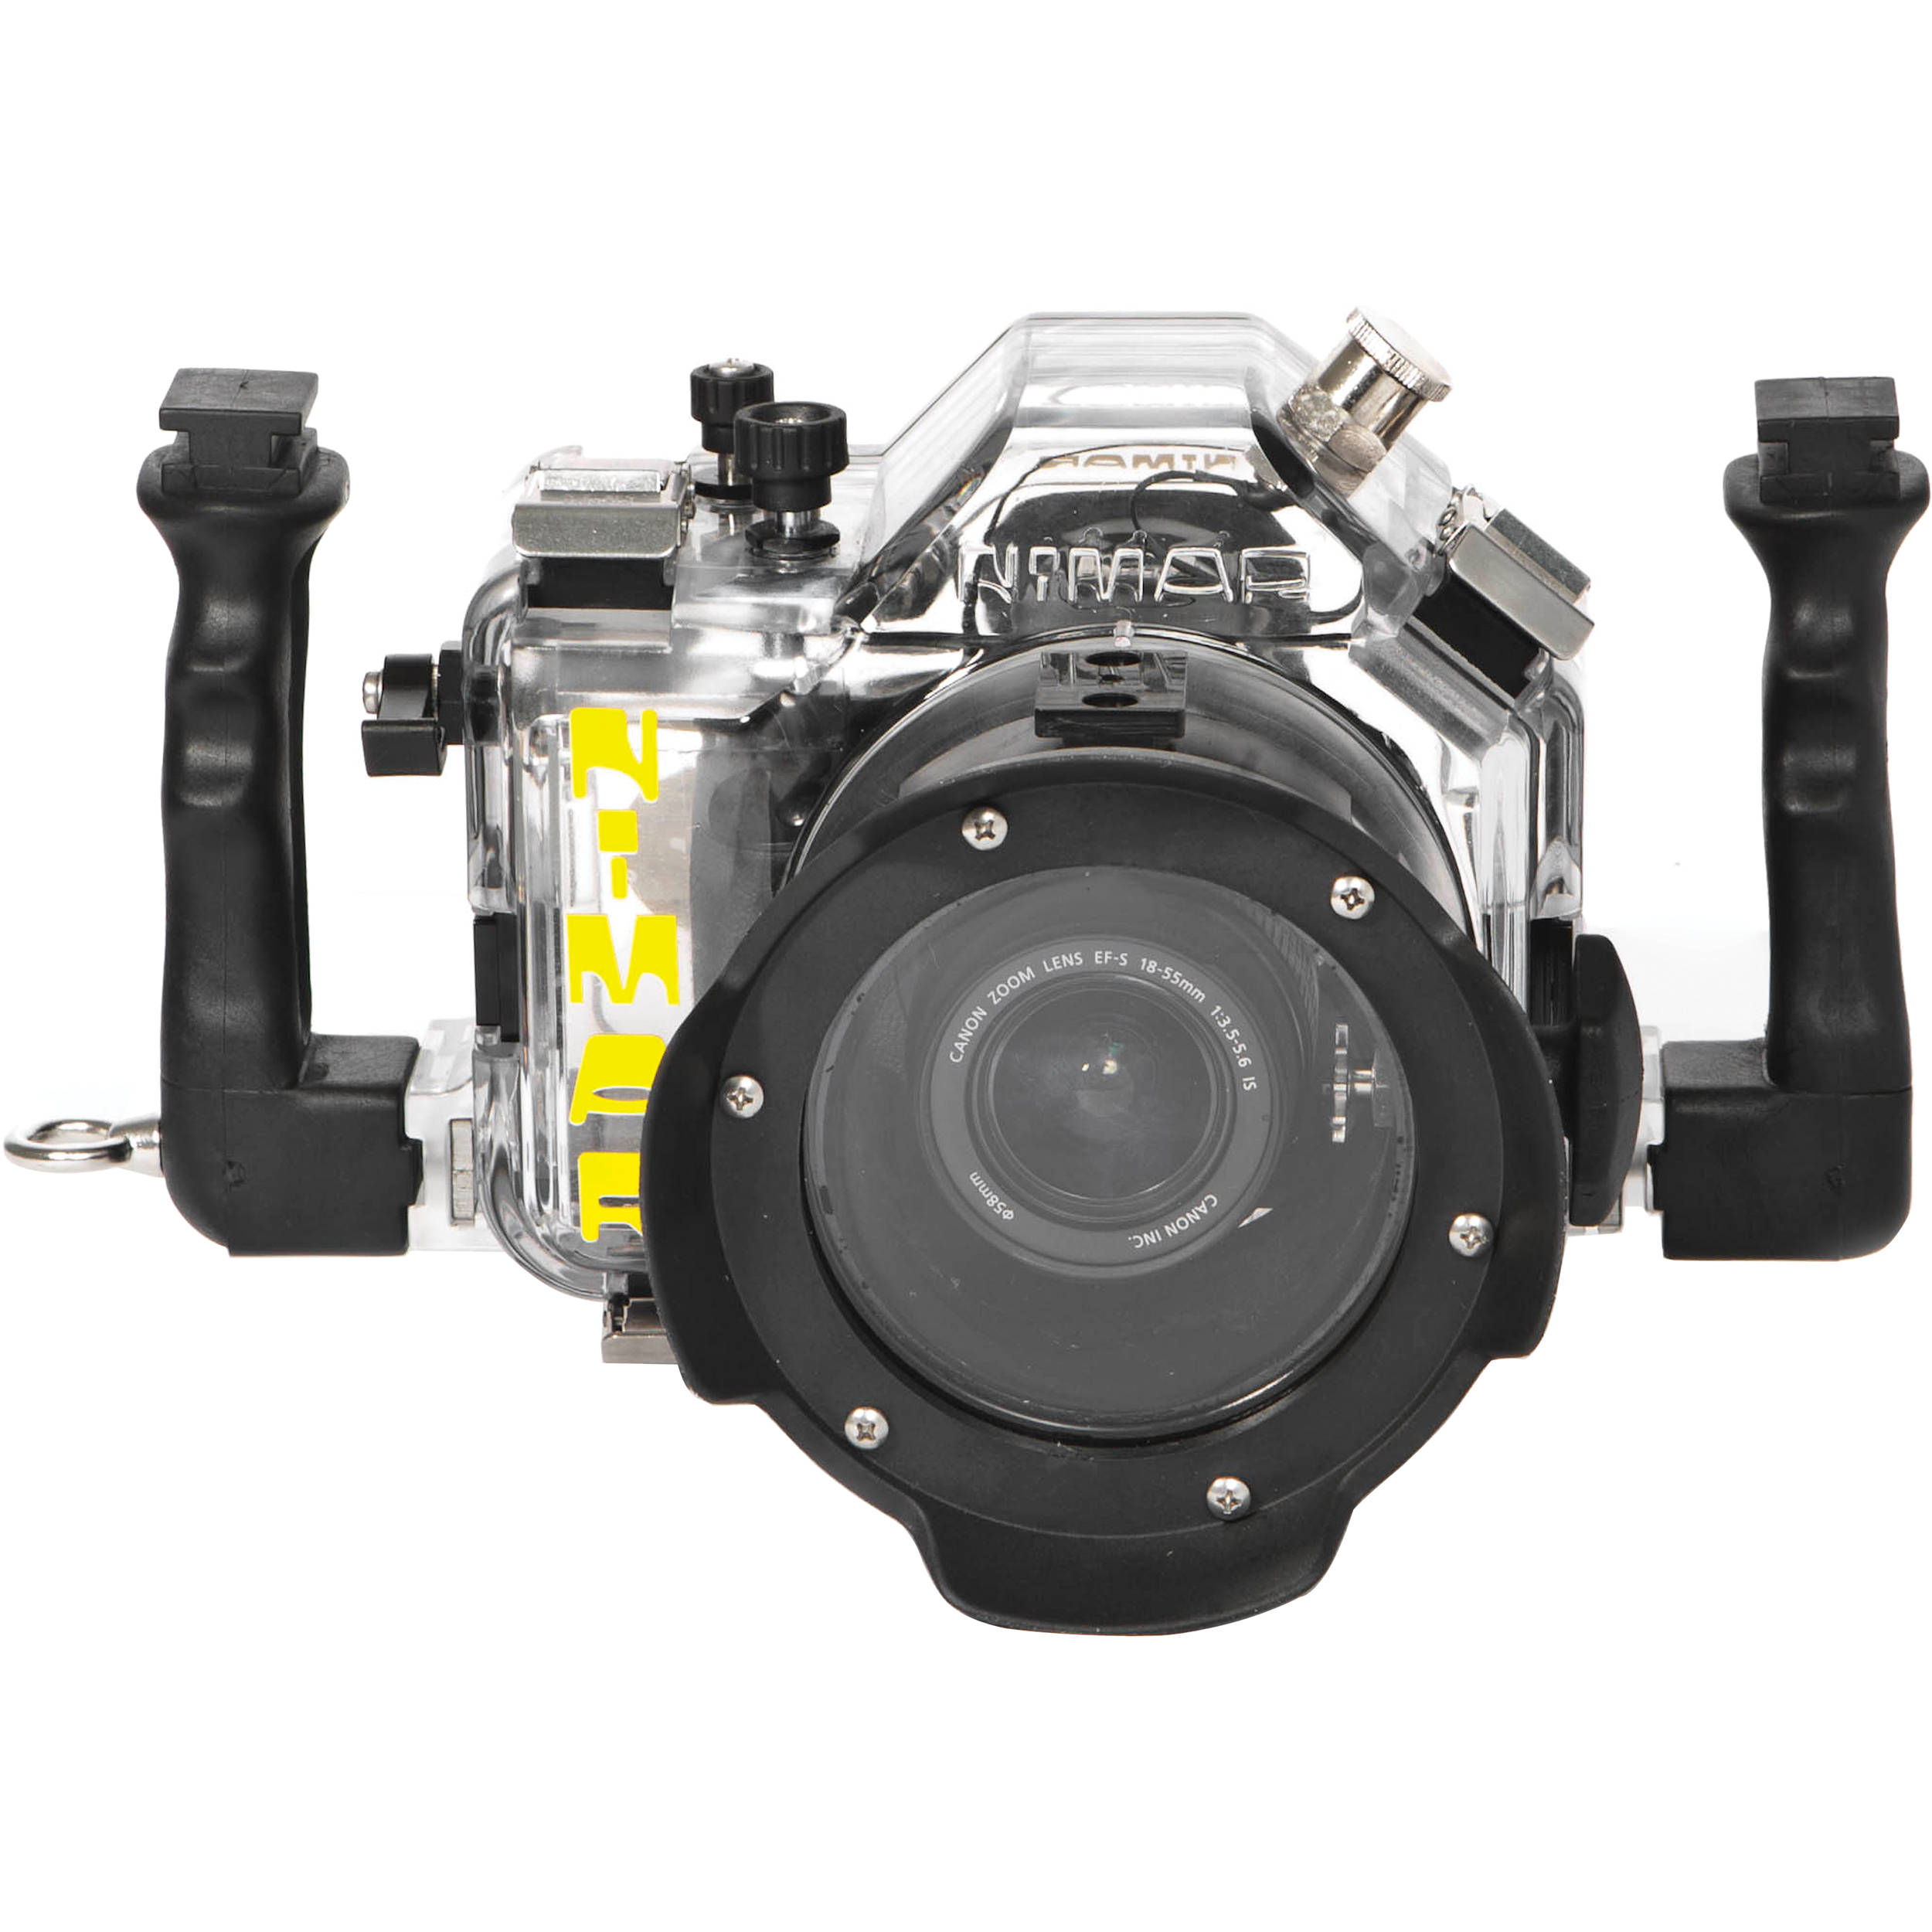 Nimar Underwater Housing for Canon EOS 450D/Rebel XSi or 500D/T1i with Lens  Port for EF-S 18-55mm f/3 5-5 6 IS